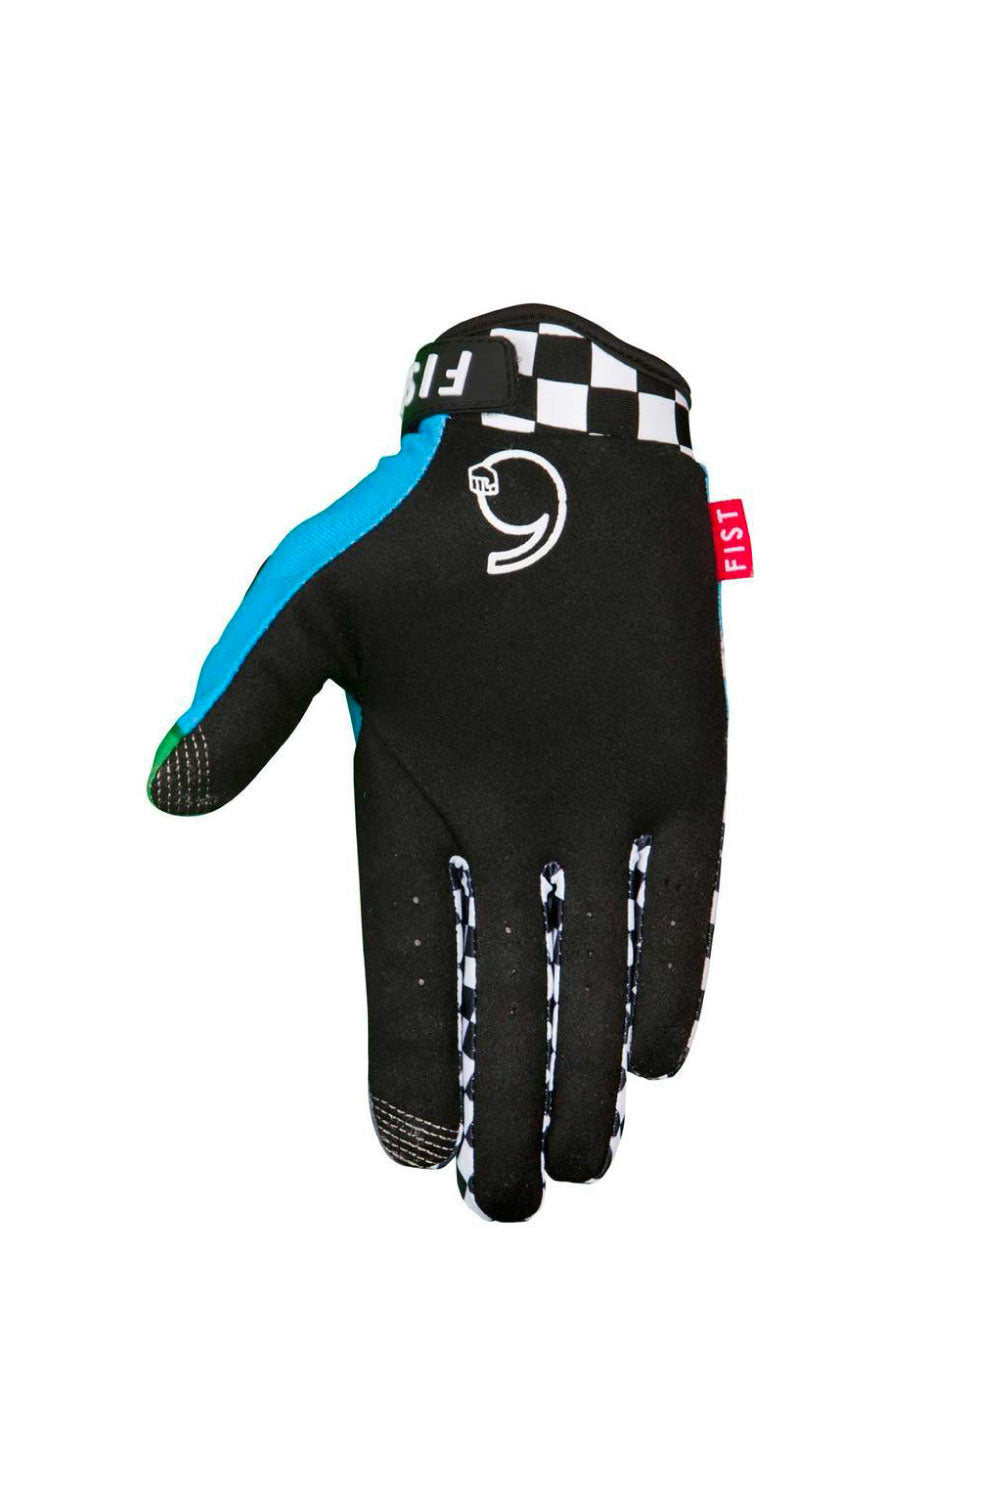 FIST Caroline Buchanan 68 Strapped MTB Bike Gloves